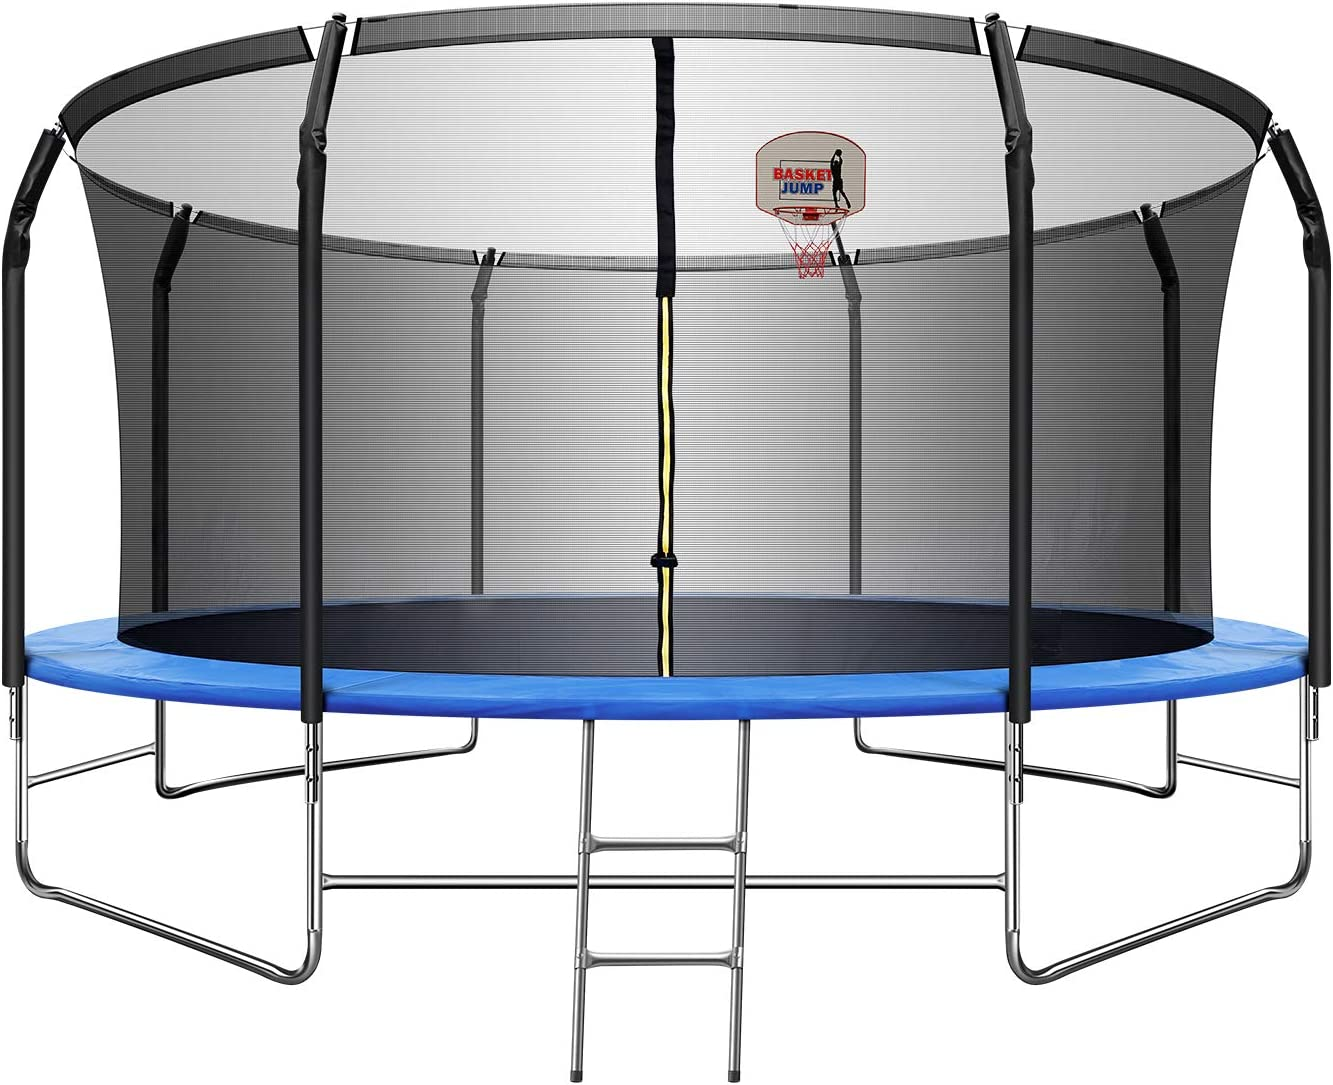 TRIPLE TREE 14 FT Trampoline with Basketball Hoop, Safety Enclos